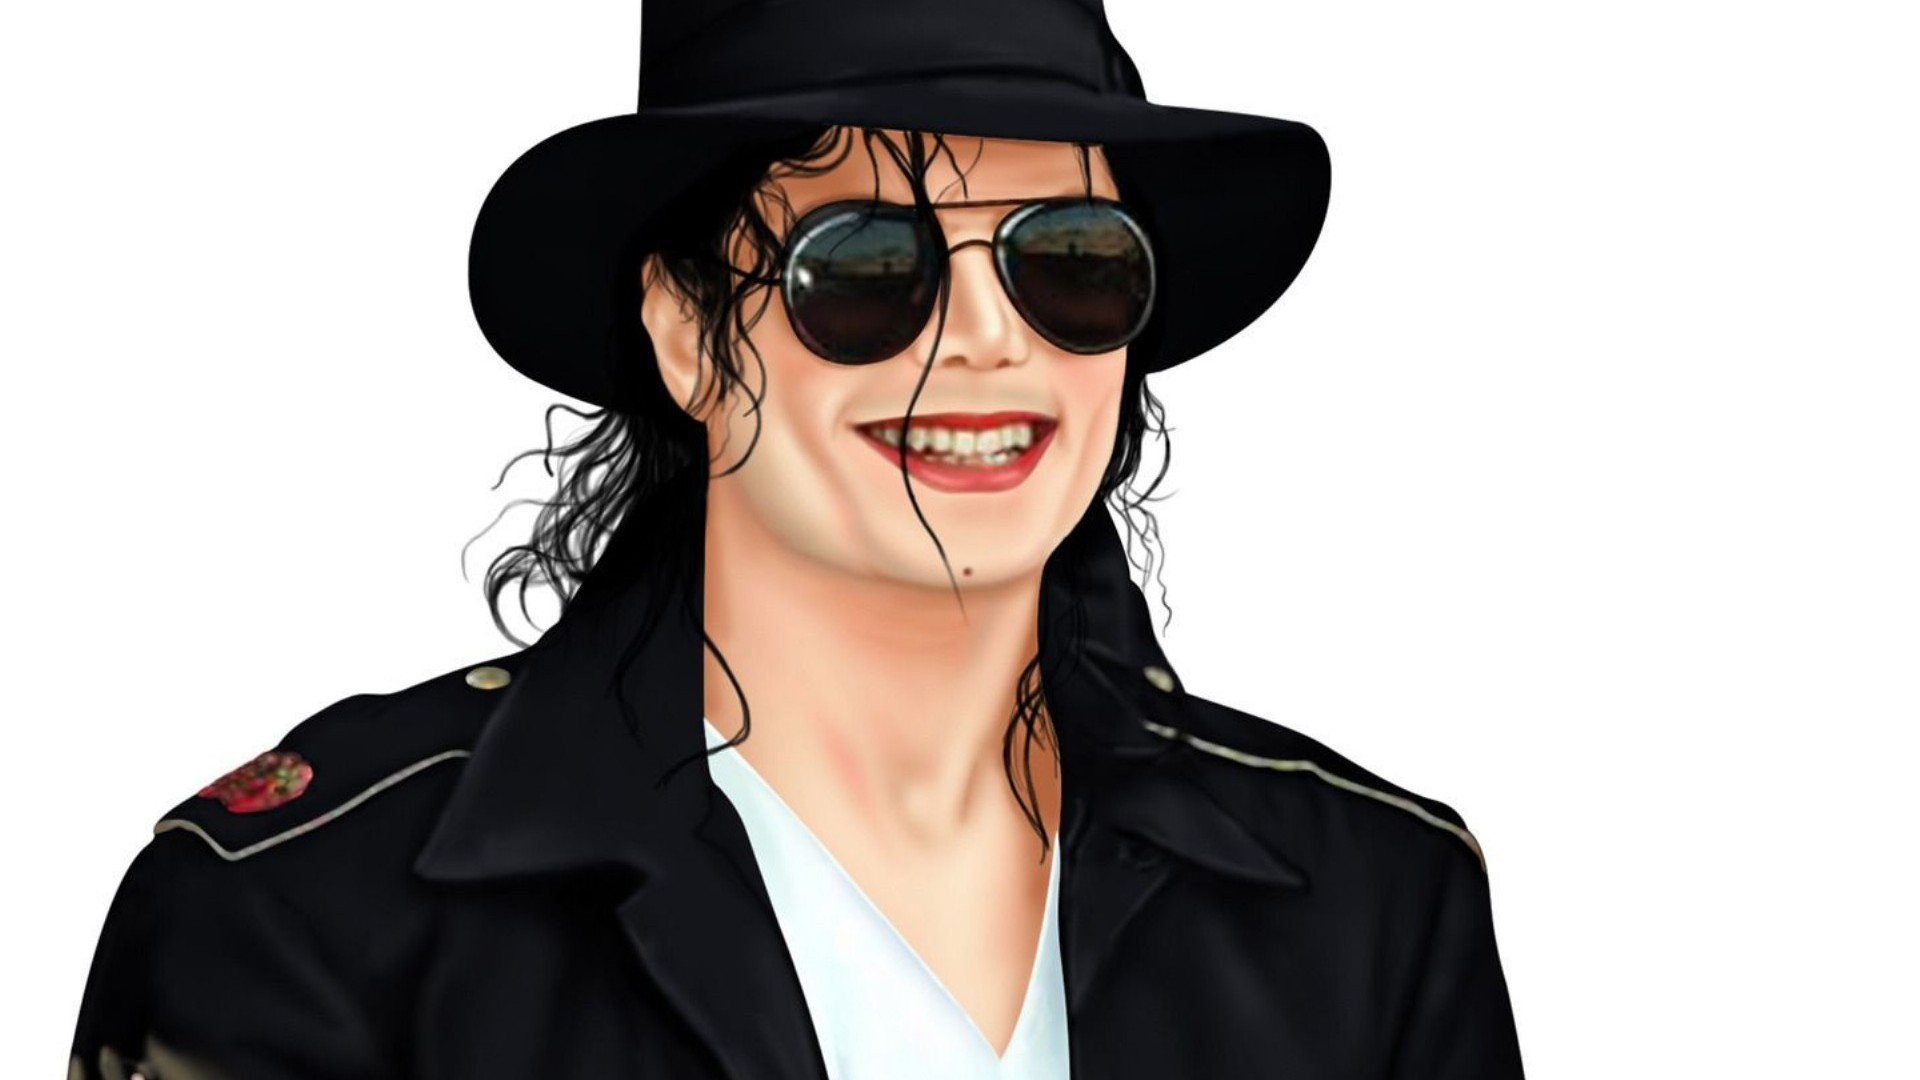 michael jackson wallpaper photos